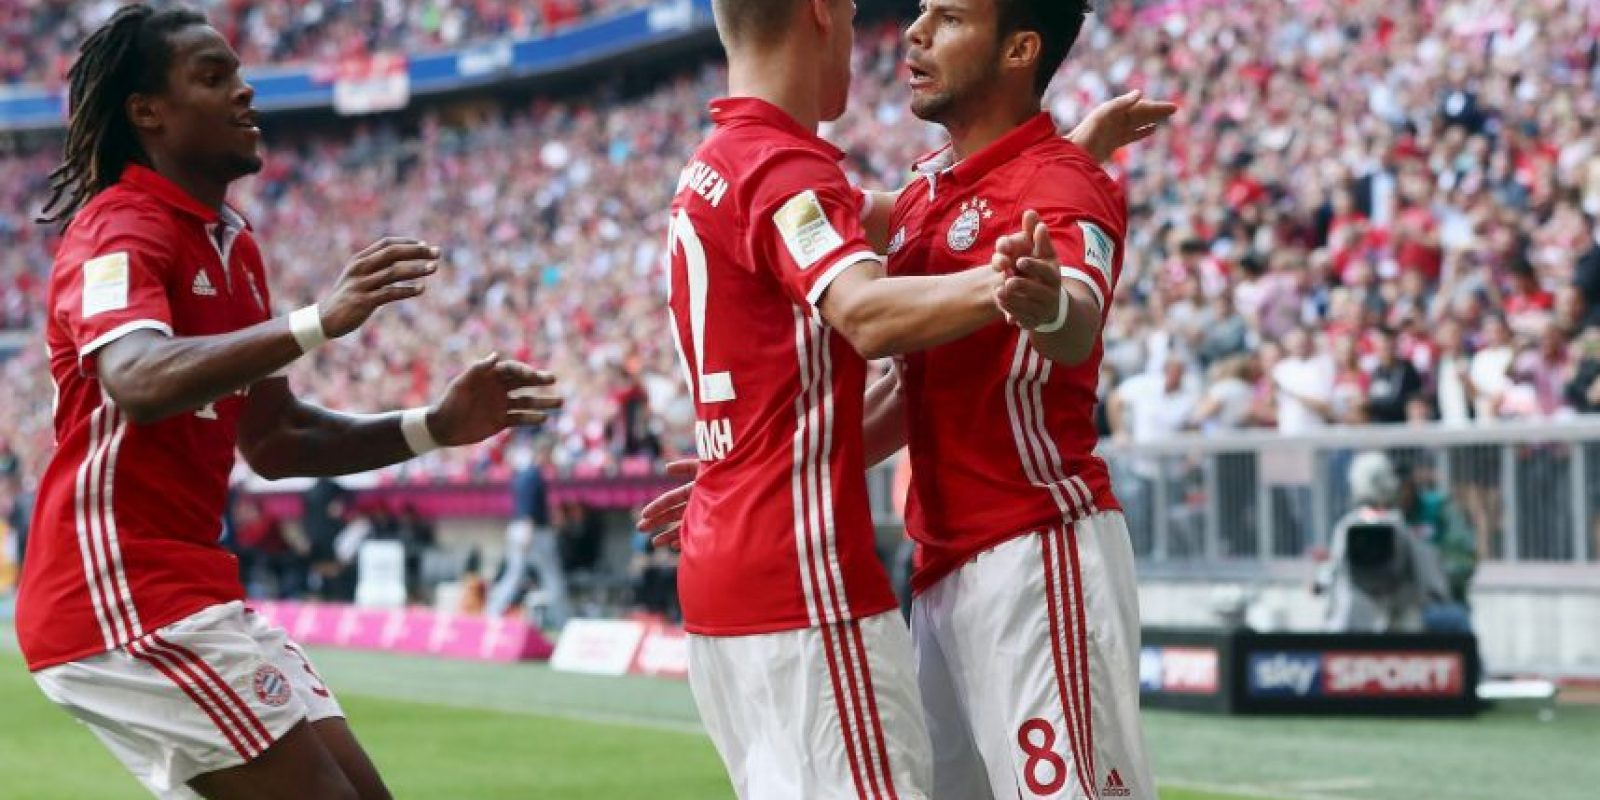 9.- Bayern Munich (357 millones) Foto: Getty Images